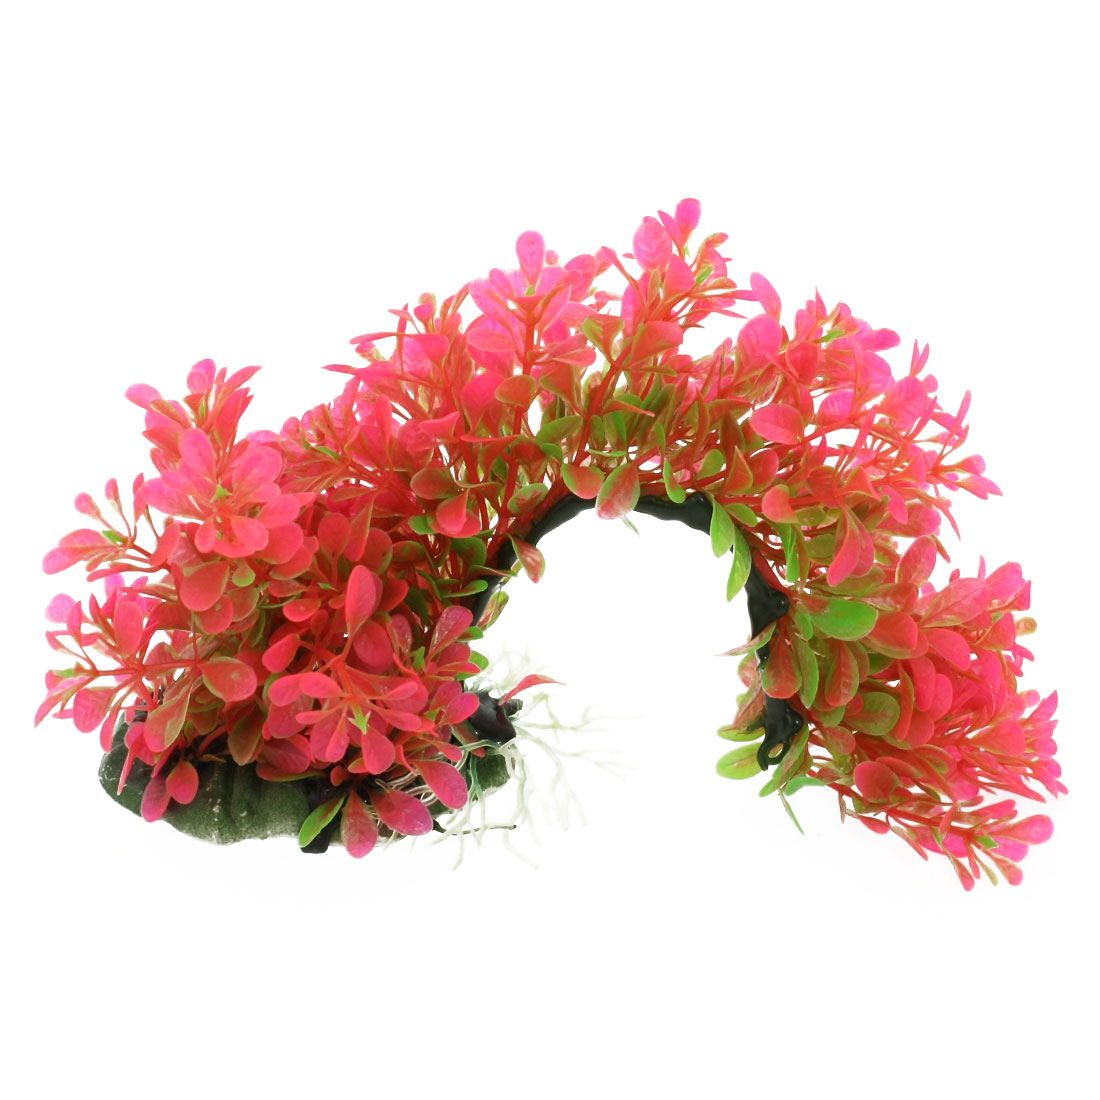 Aquarium Artificial Arch Shaped Aquatic Plants Ornament Hot Pink Green